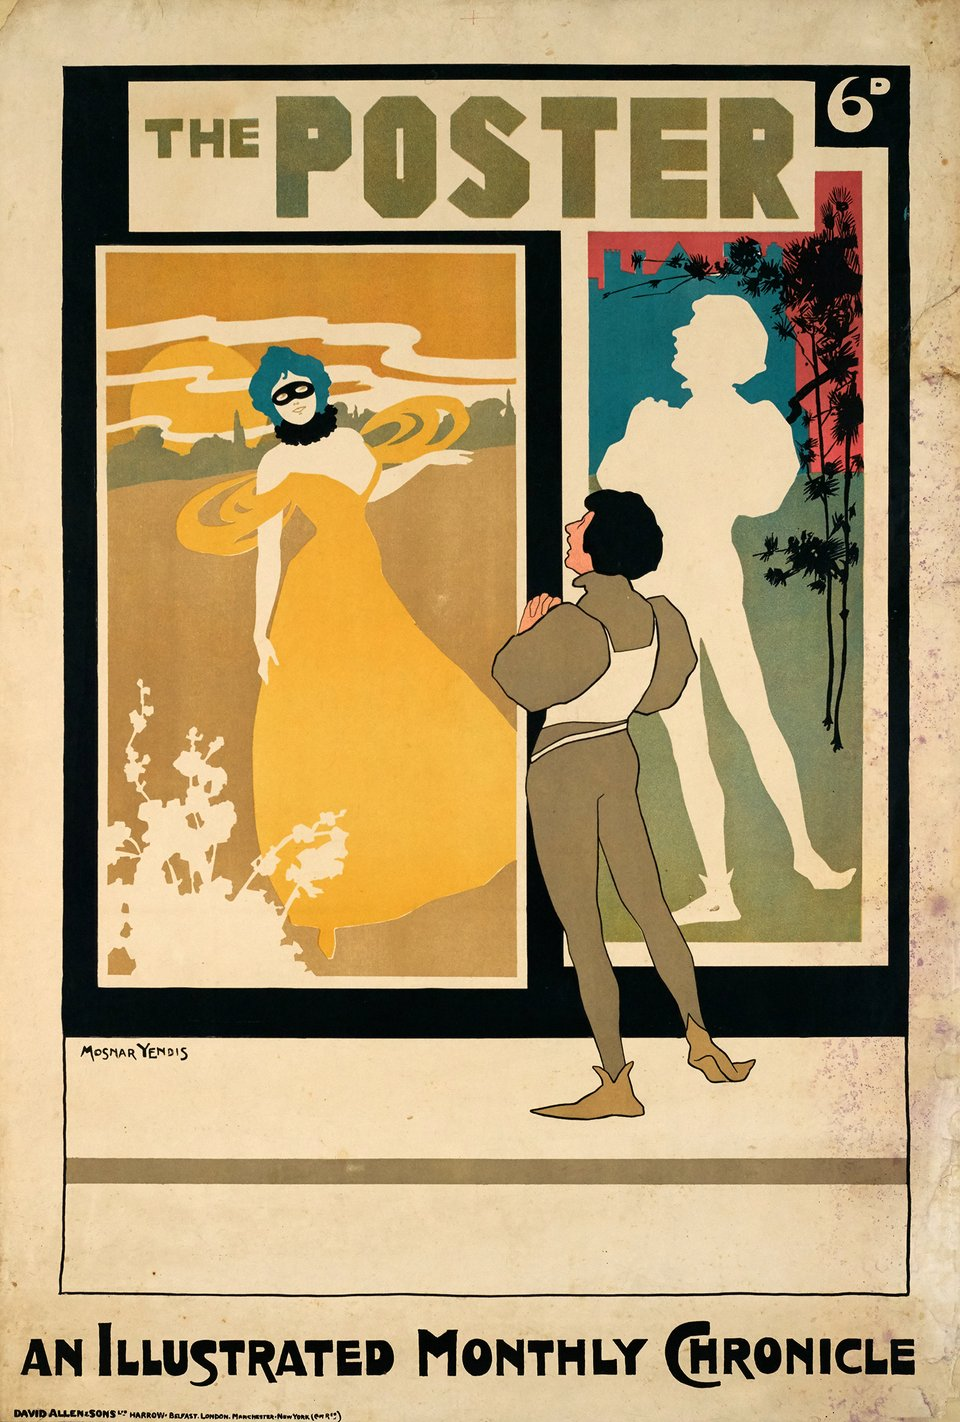 The Poster, an illustrated monthly chronicle – Vintage poster – Mosnar YENDIS – 1899